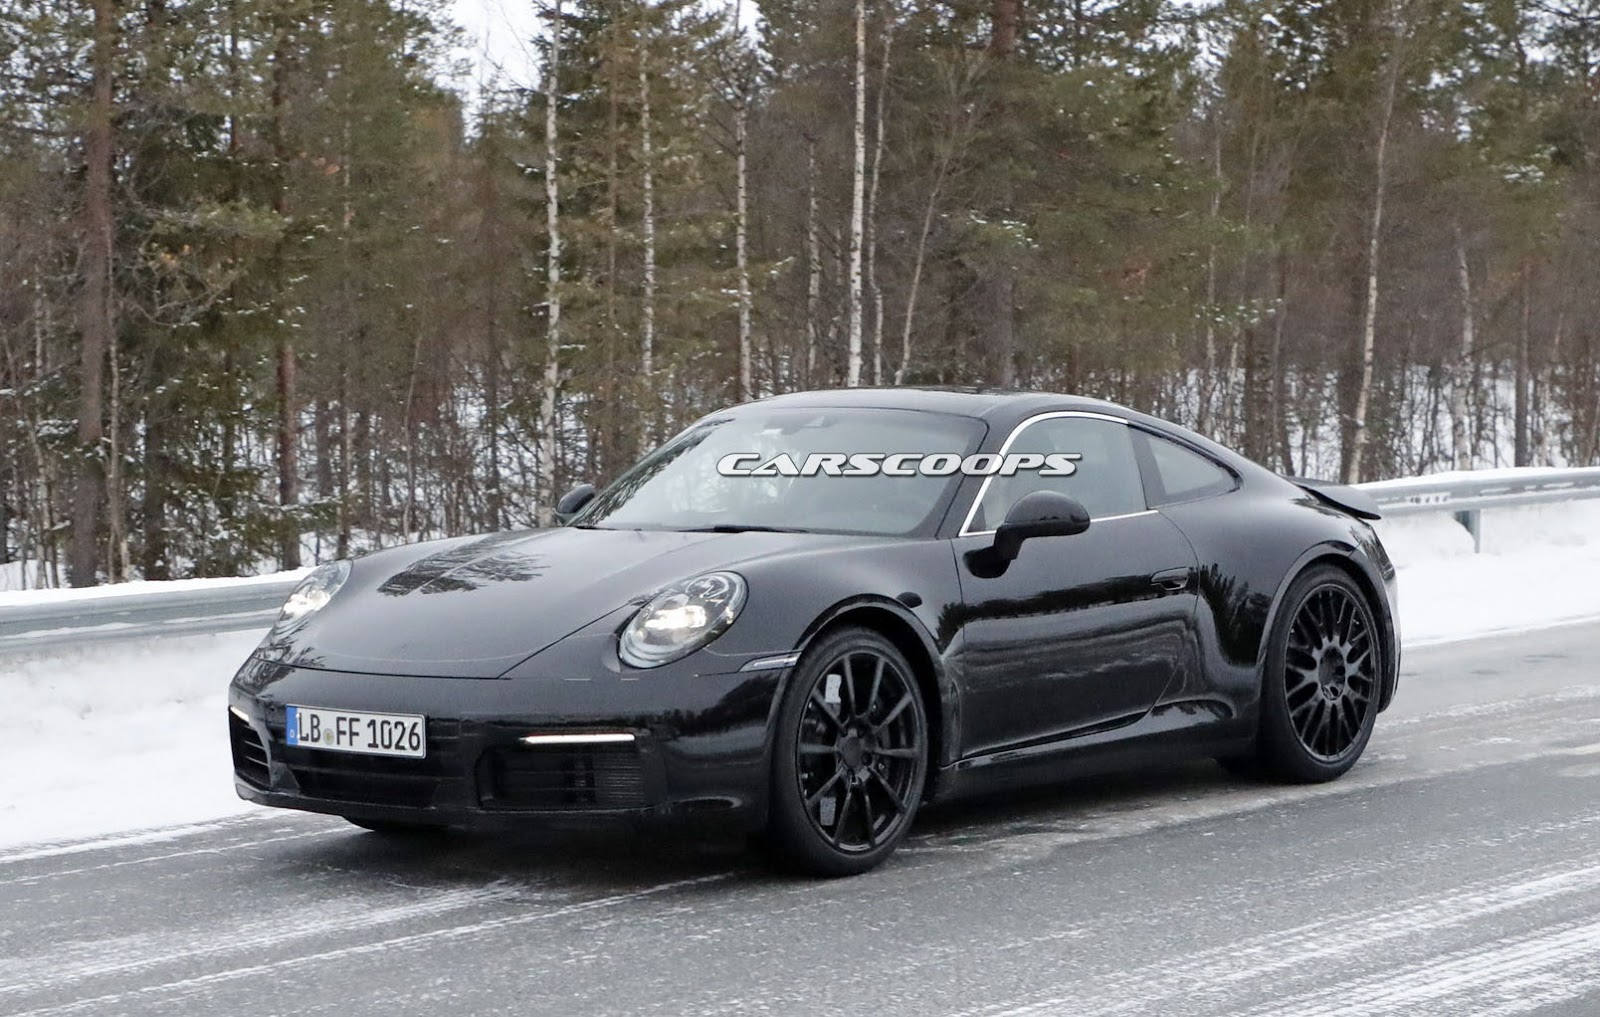 2019 porsche 911 reveals its form but keeps its secrets carscoops. Black Bedroom Furniture Sets. Home Design Ideas